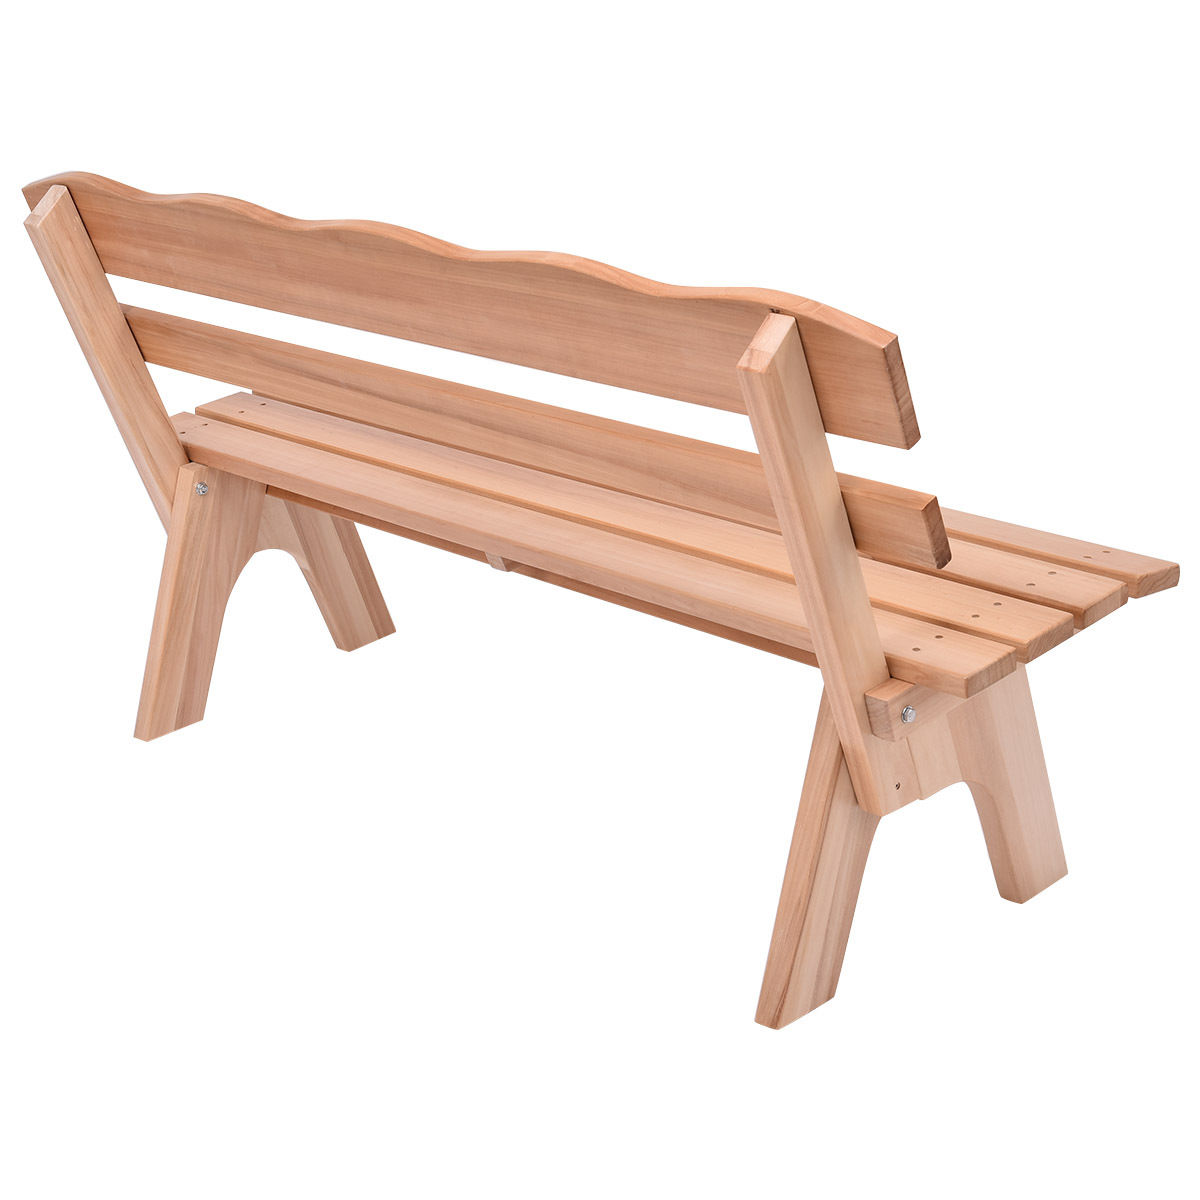 Giantex 5 Ft 3 Seats Outdoor Wooden Garden Bench Chair Modern Wood Frame Yard Deck Furniture OP3204-in Patio Benches from Furniture on Aliexpress.com ...  sc 1 st  AliExpress.com & Giantex 5 Ft 3 Seats Outdoor Wooden Garden Bench Chair Modern Wood ...